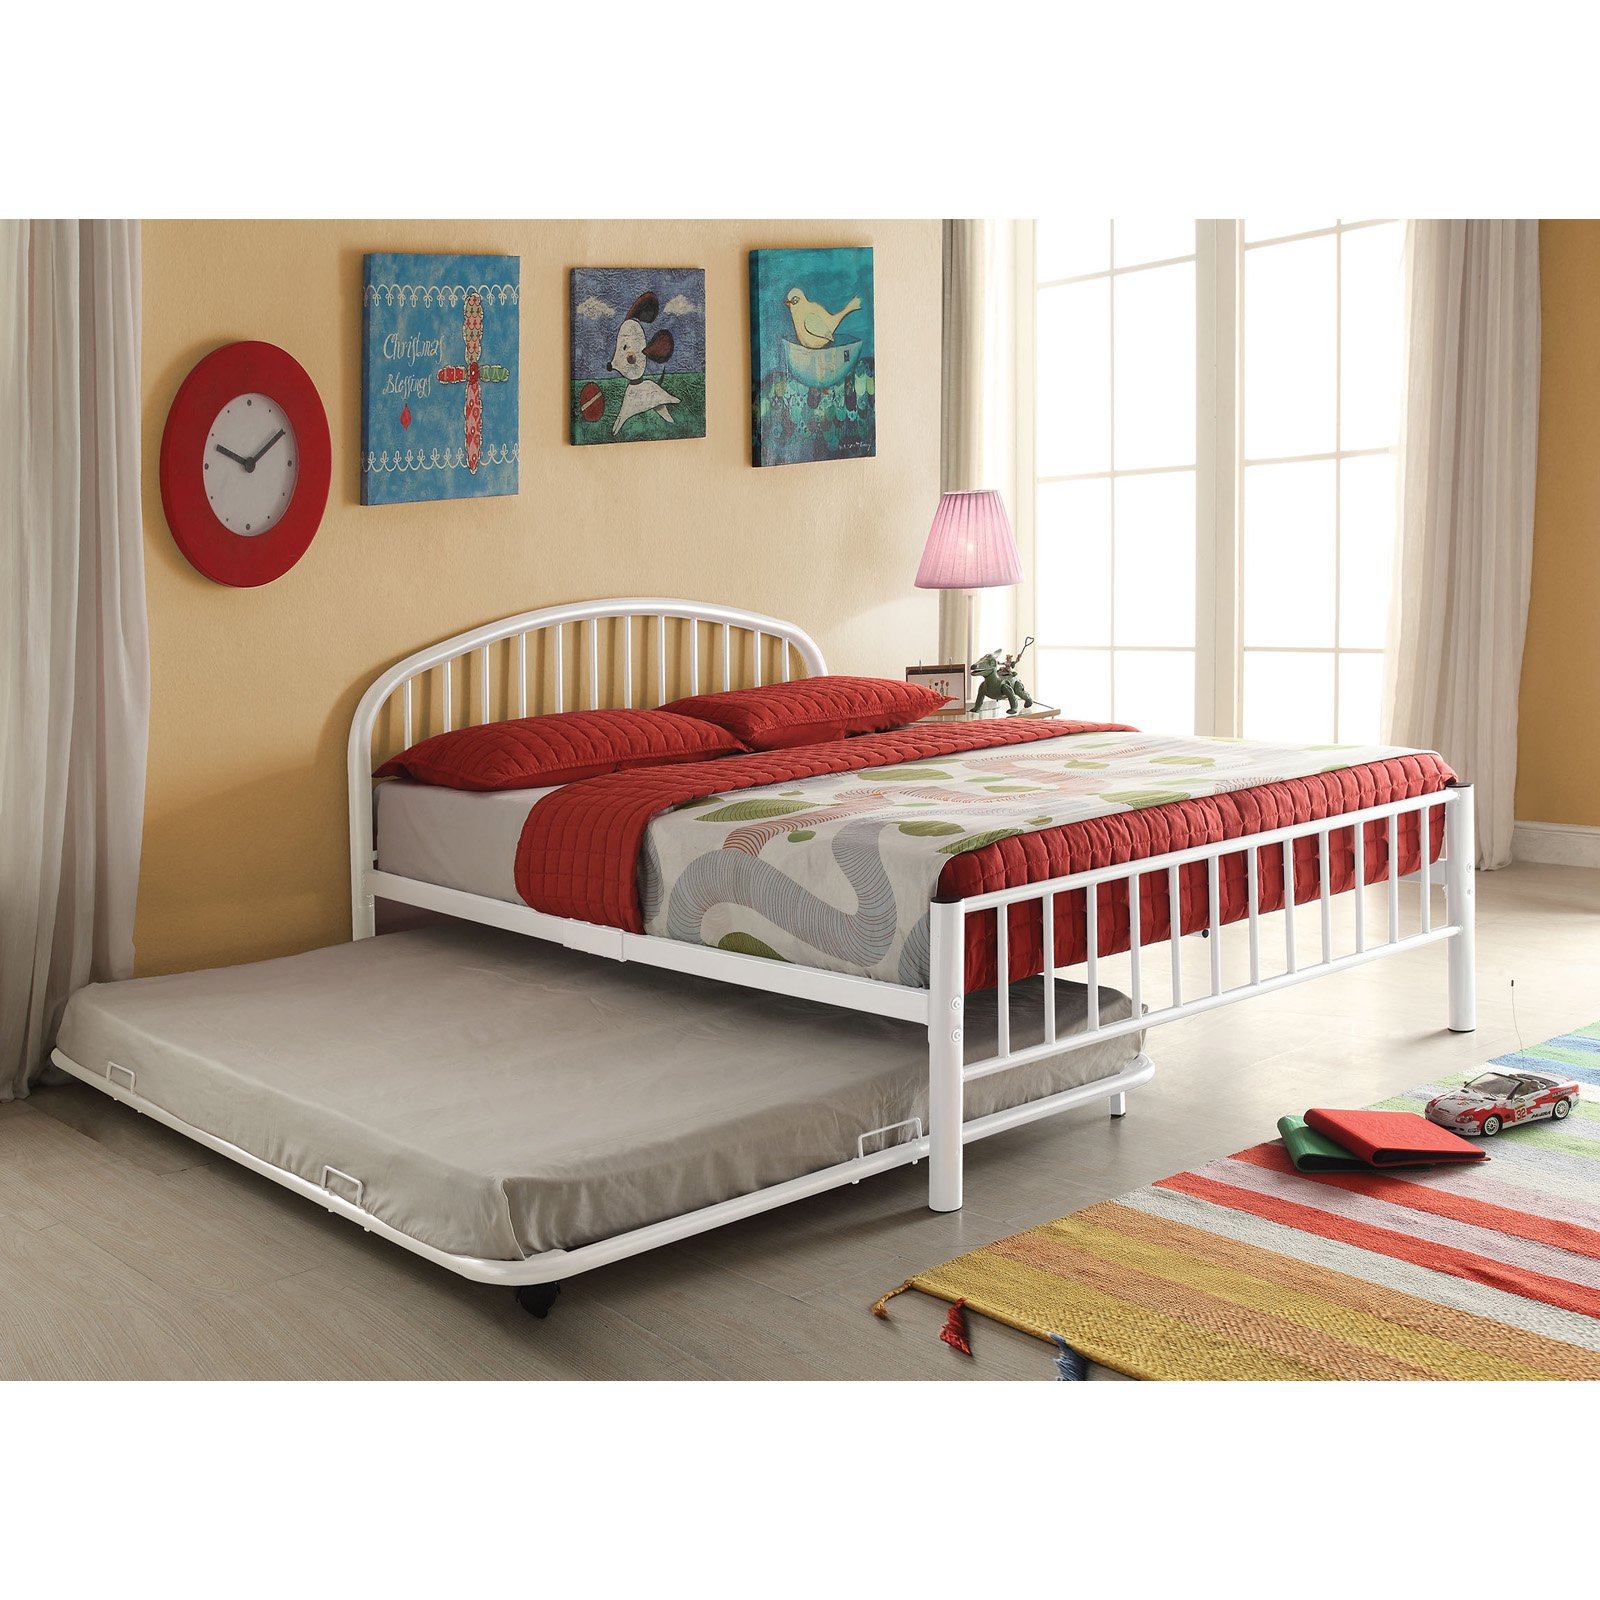 Gentil Cailyn Kidsu0027 Trundle Bed Only, Full, White, Mattress Not Included